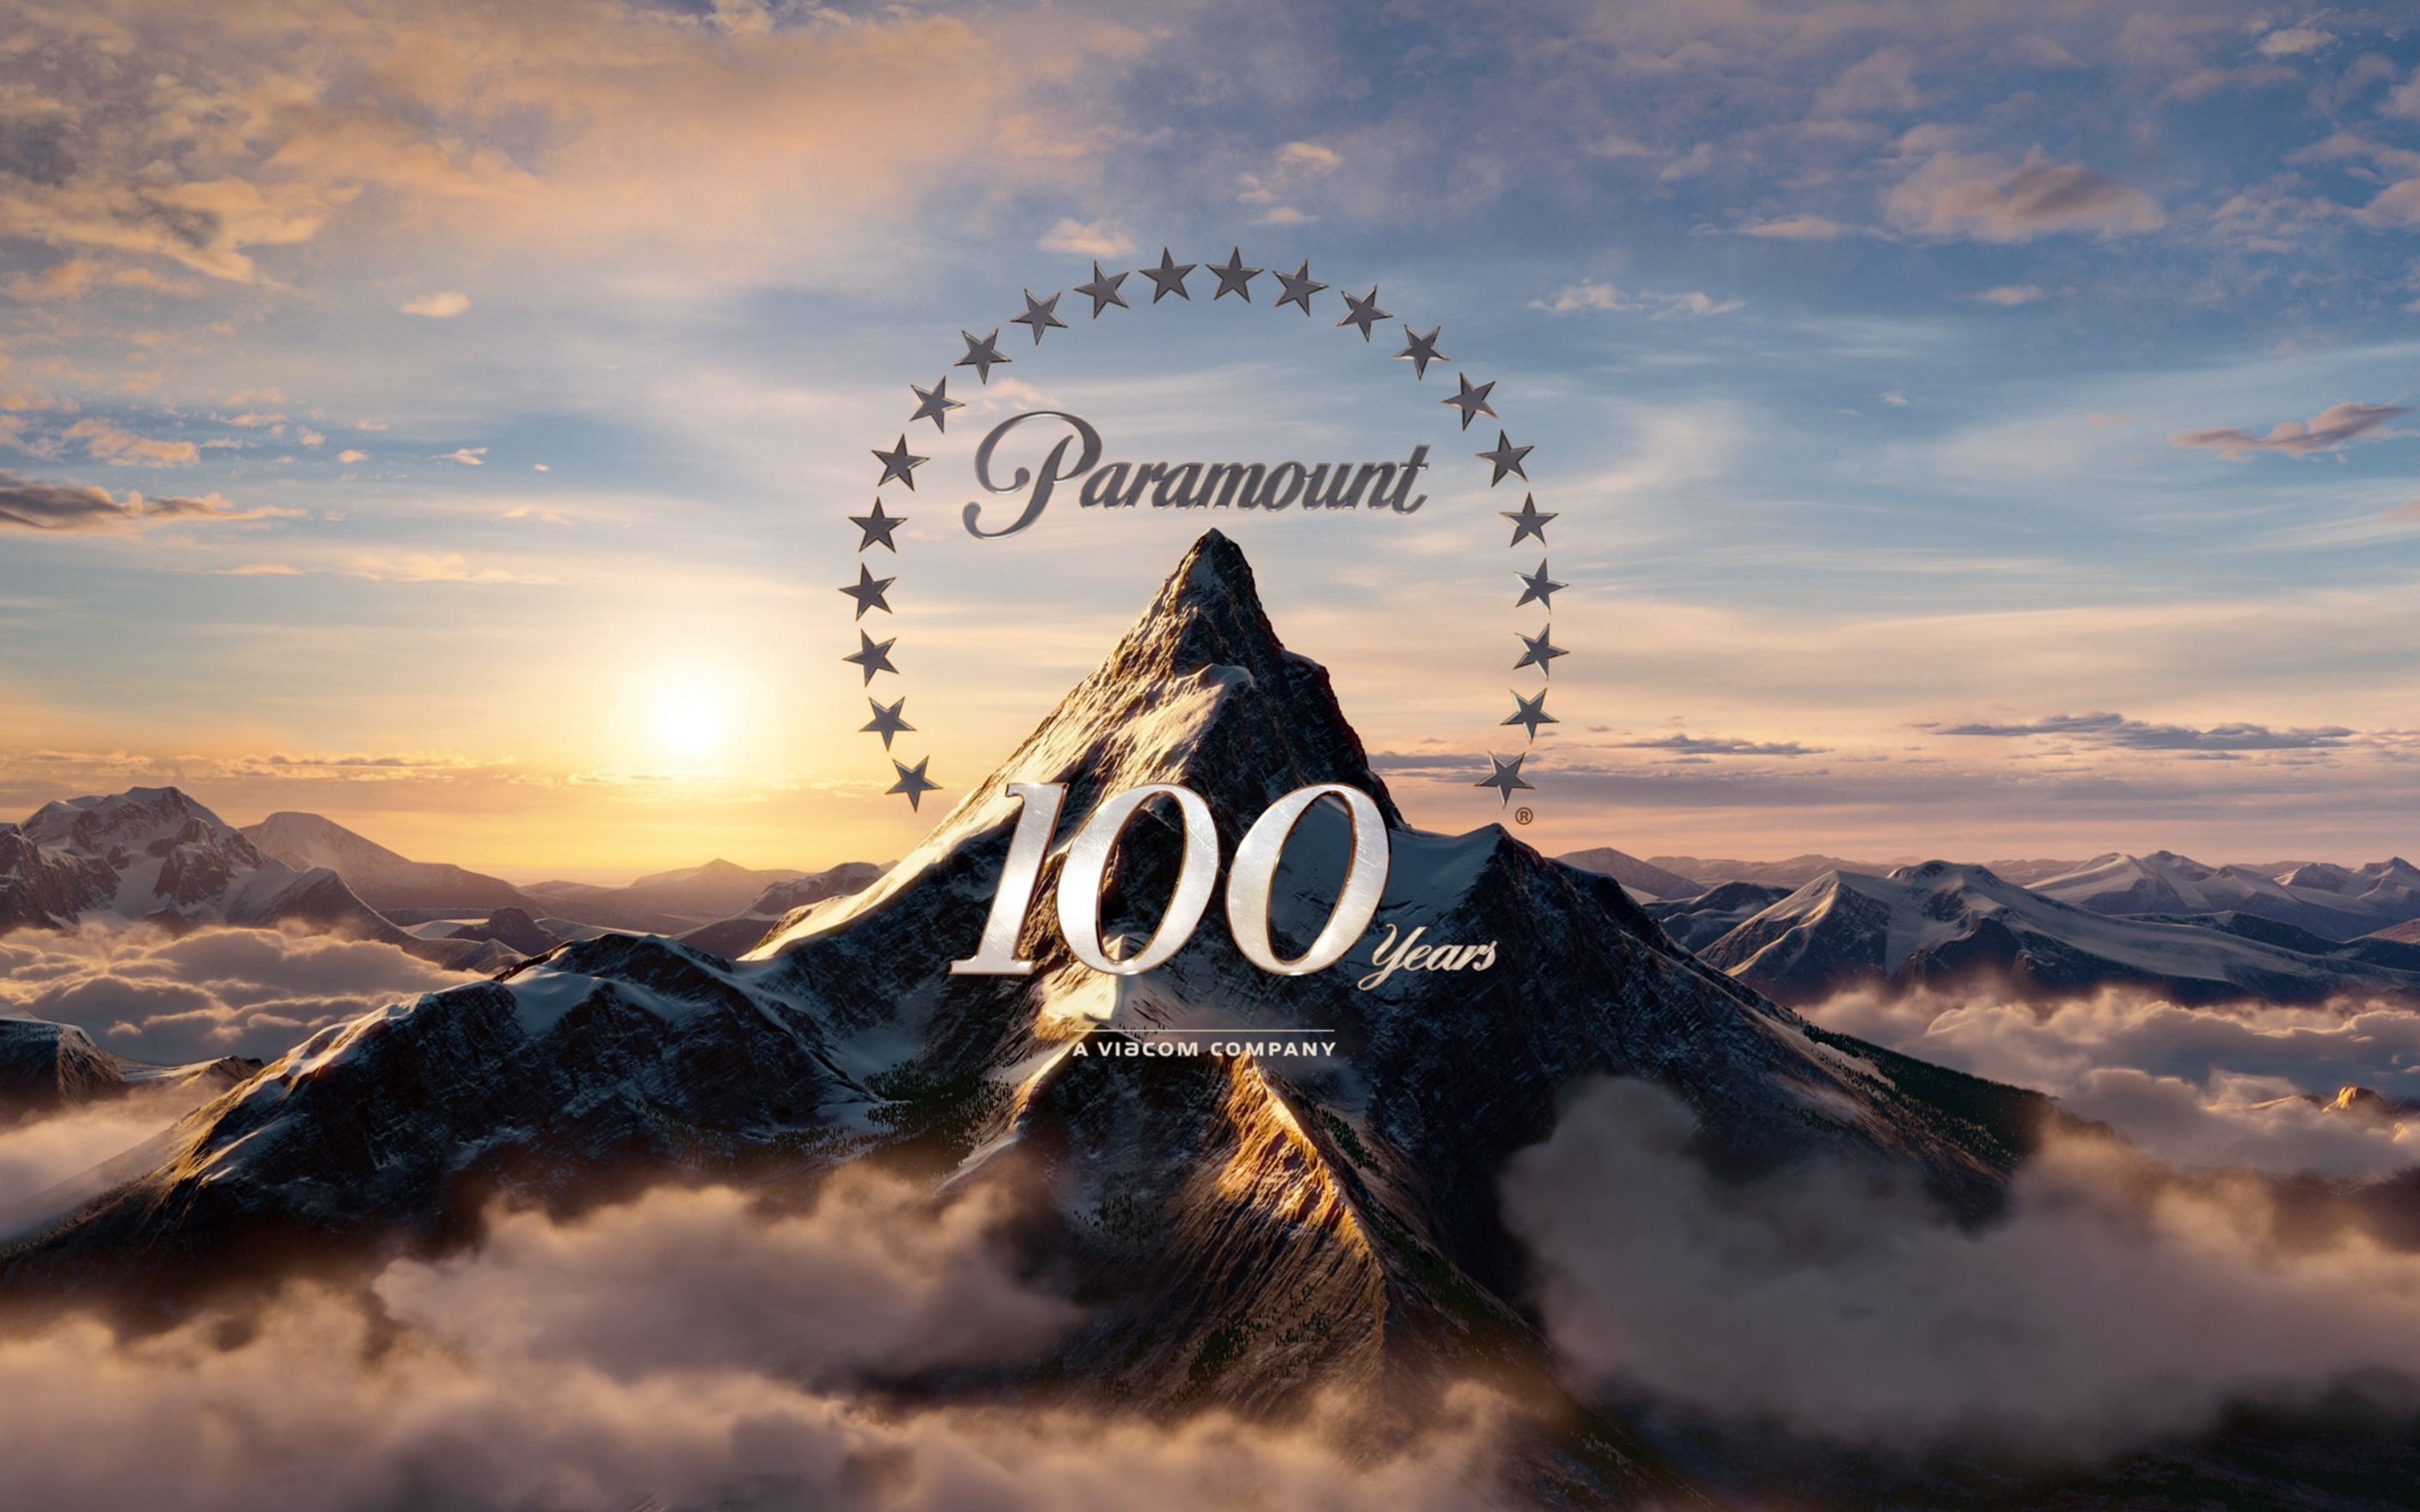 Download free HD 100 Years of Paramount Wide Wallpaper, image